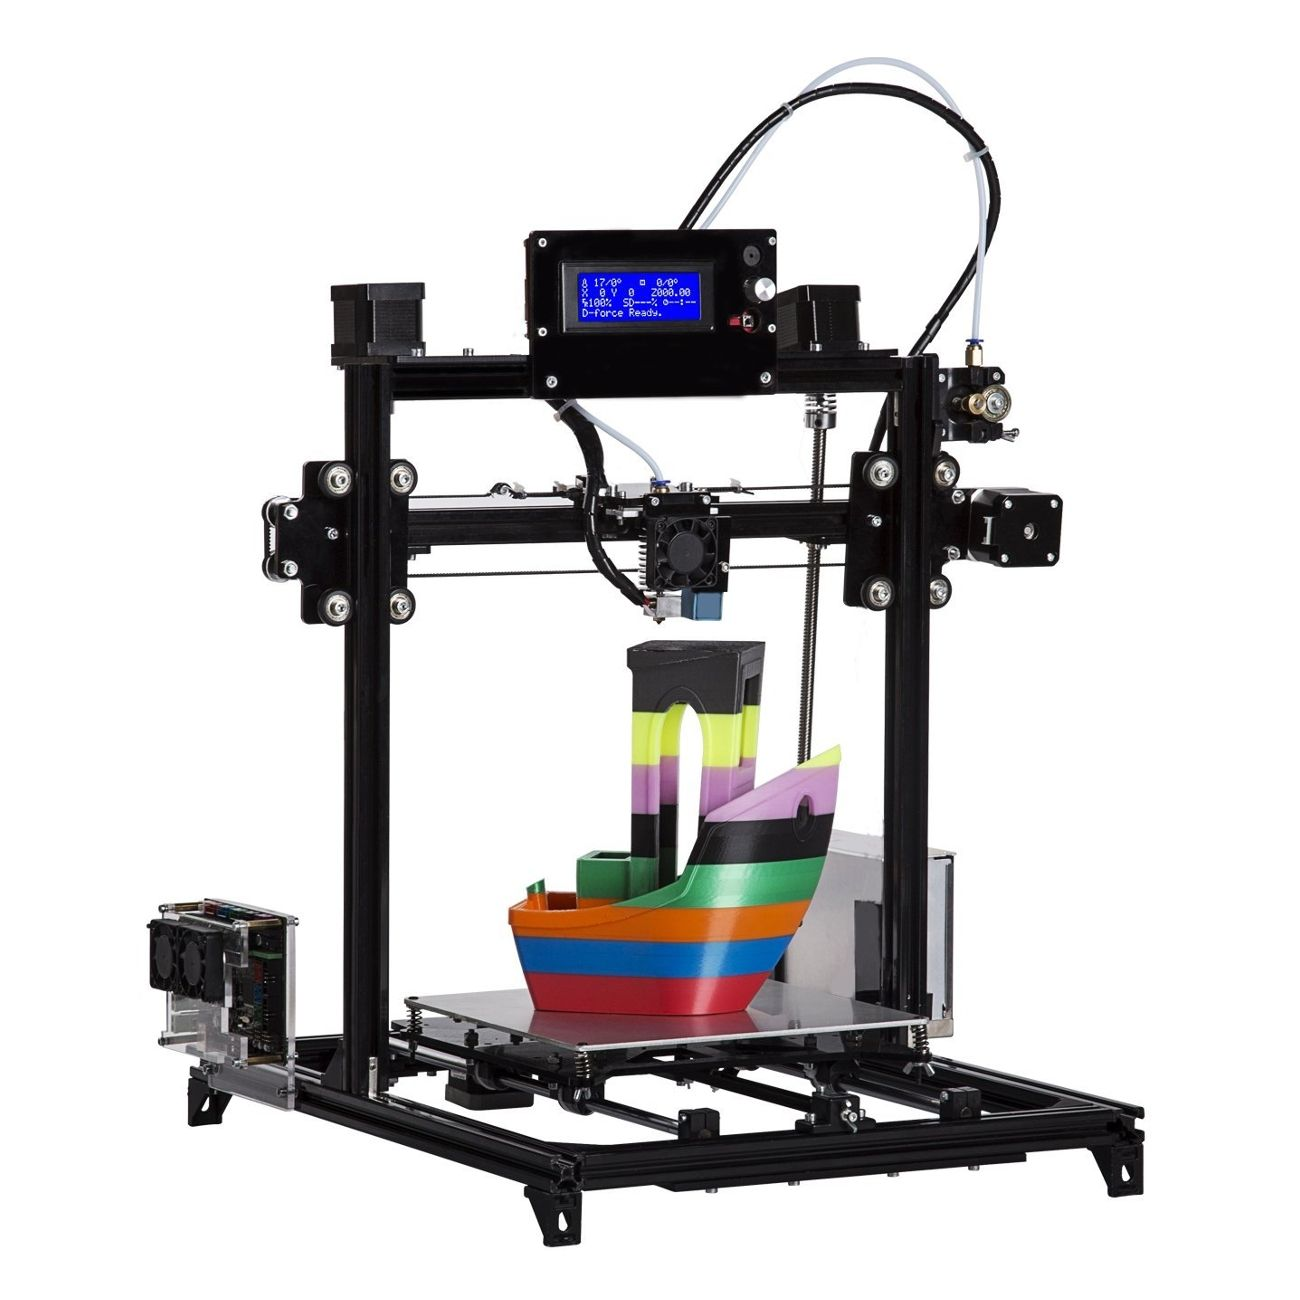 FLSUN® Prusa i3 DIY Desktop 3D Printer Kit 200x200x220mm